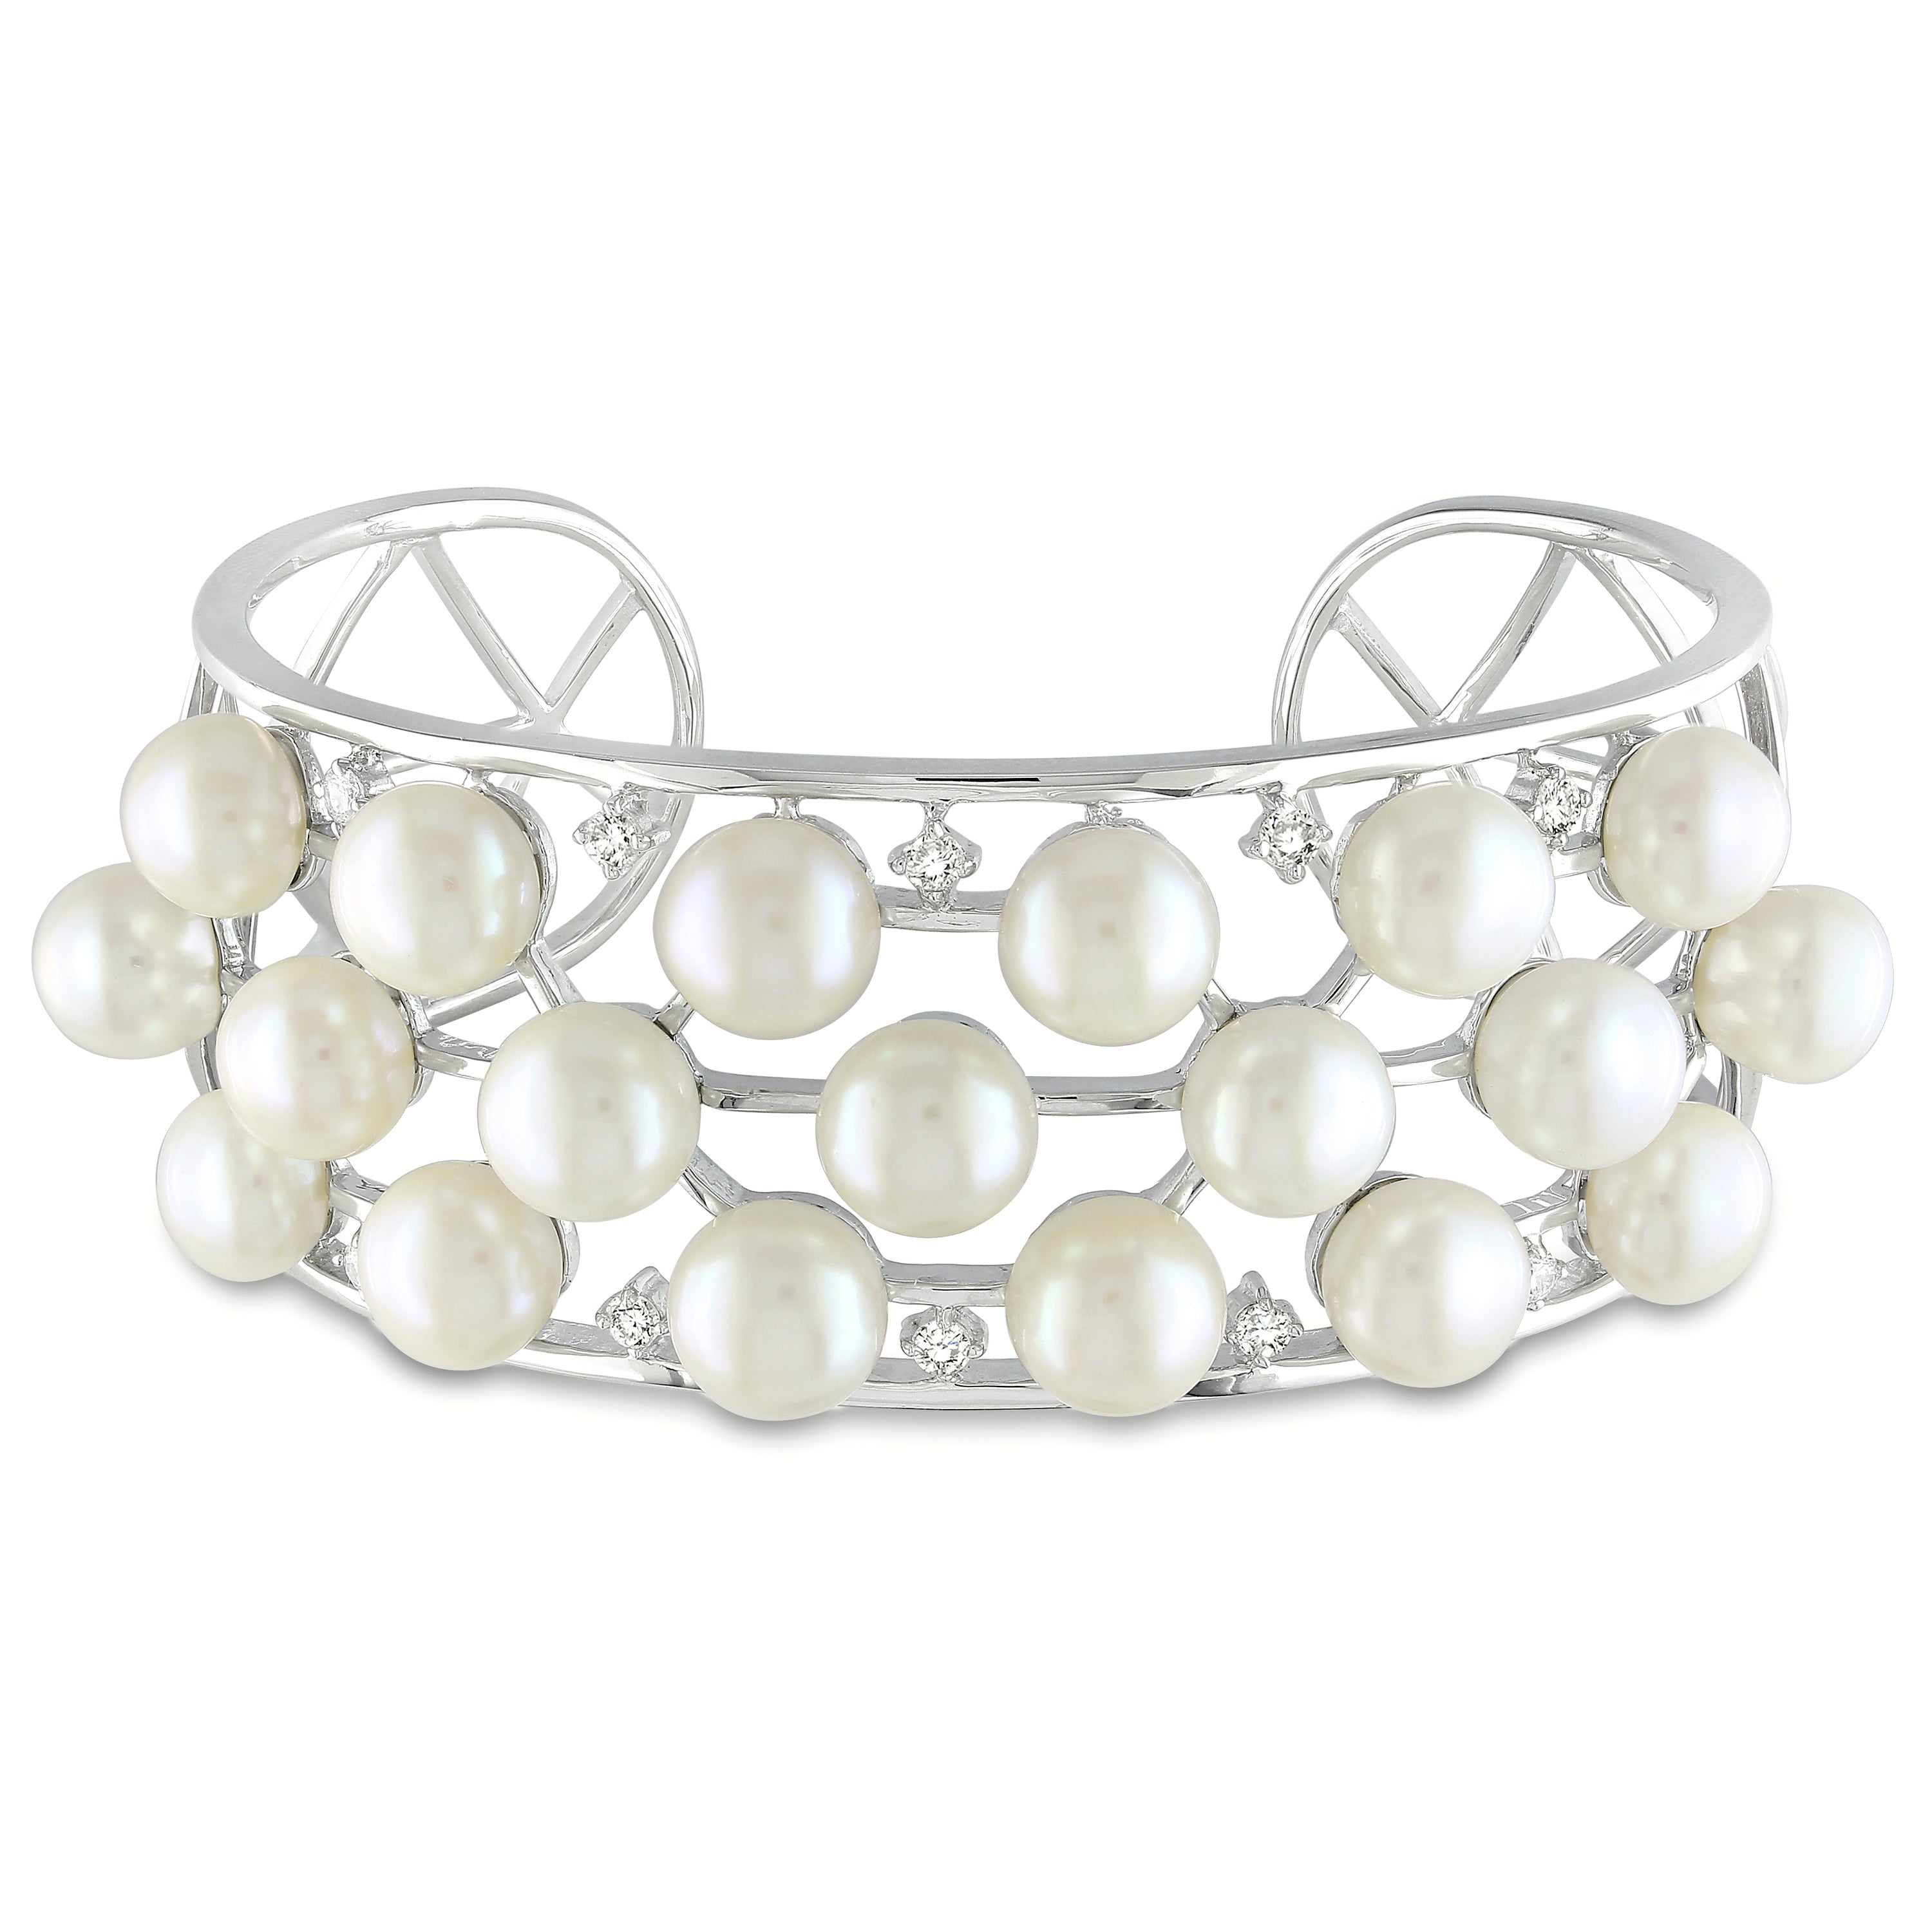 Miadora Silver FW Pearl and Cubic Zirconia Cuff Bracelet (8-8.5 mm)